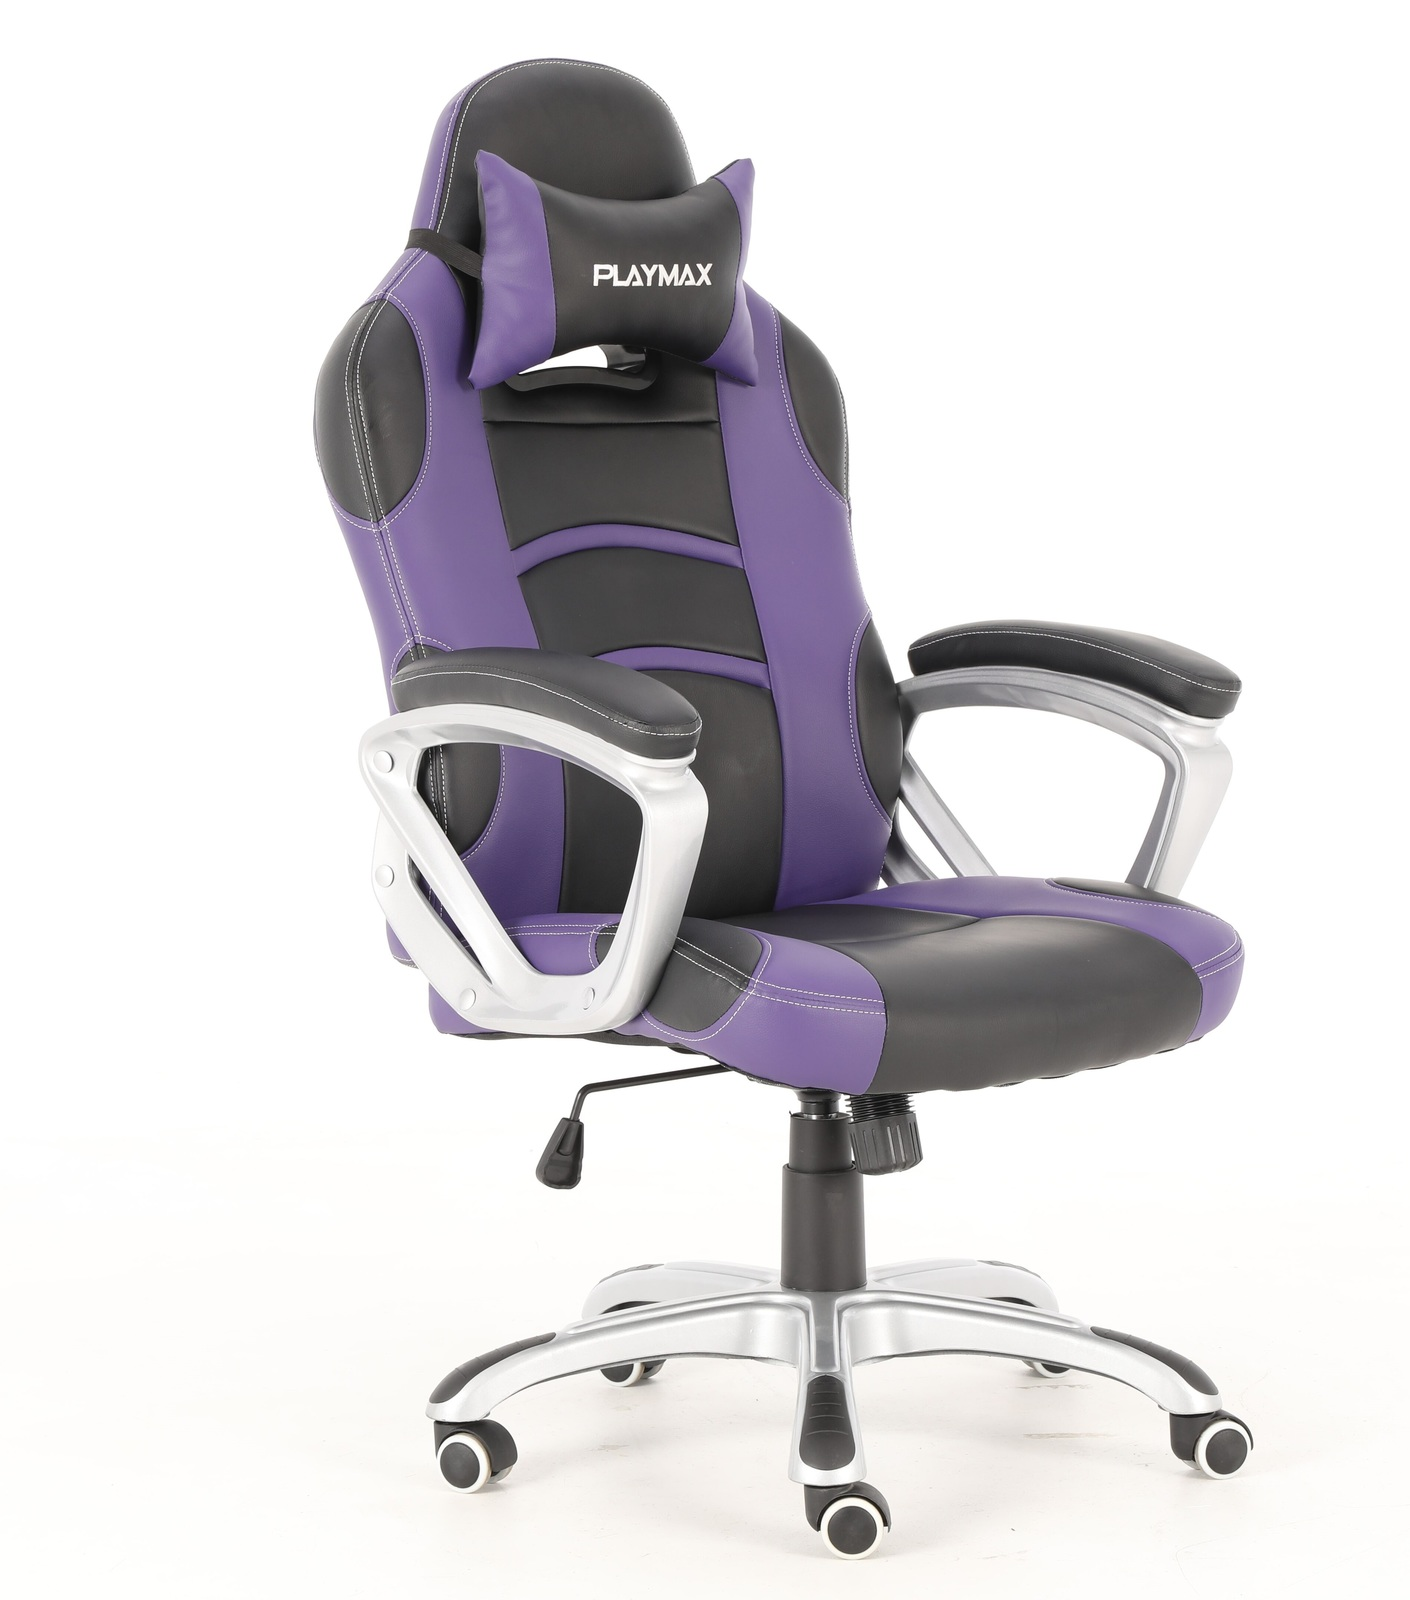 Playmax Gaming Chair Purple and Black for  image